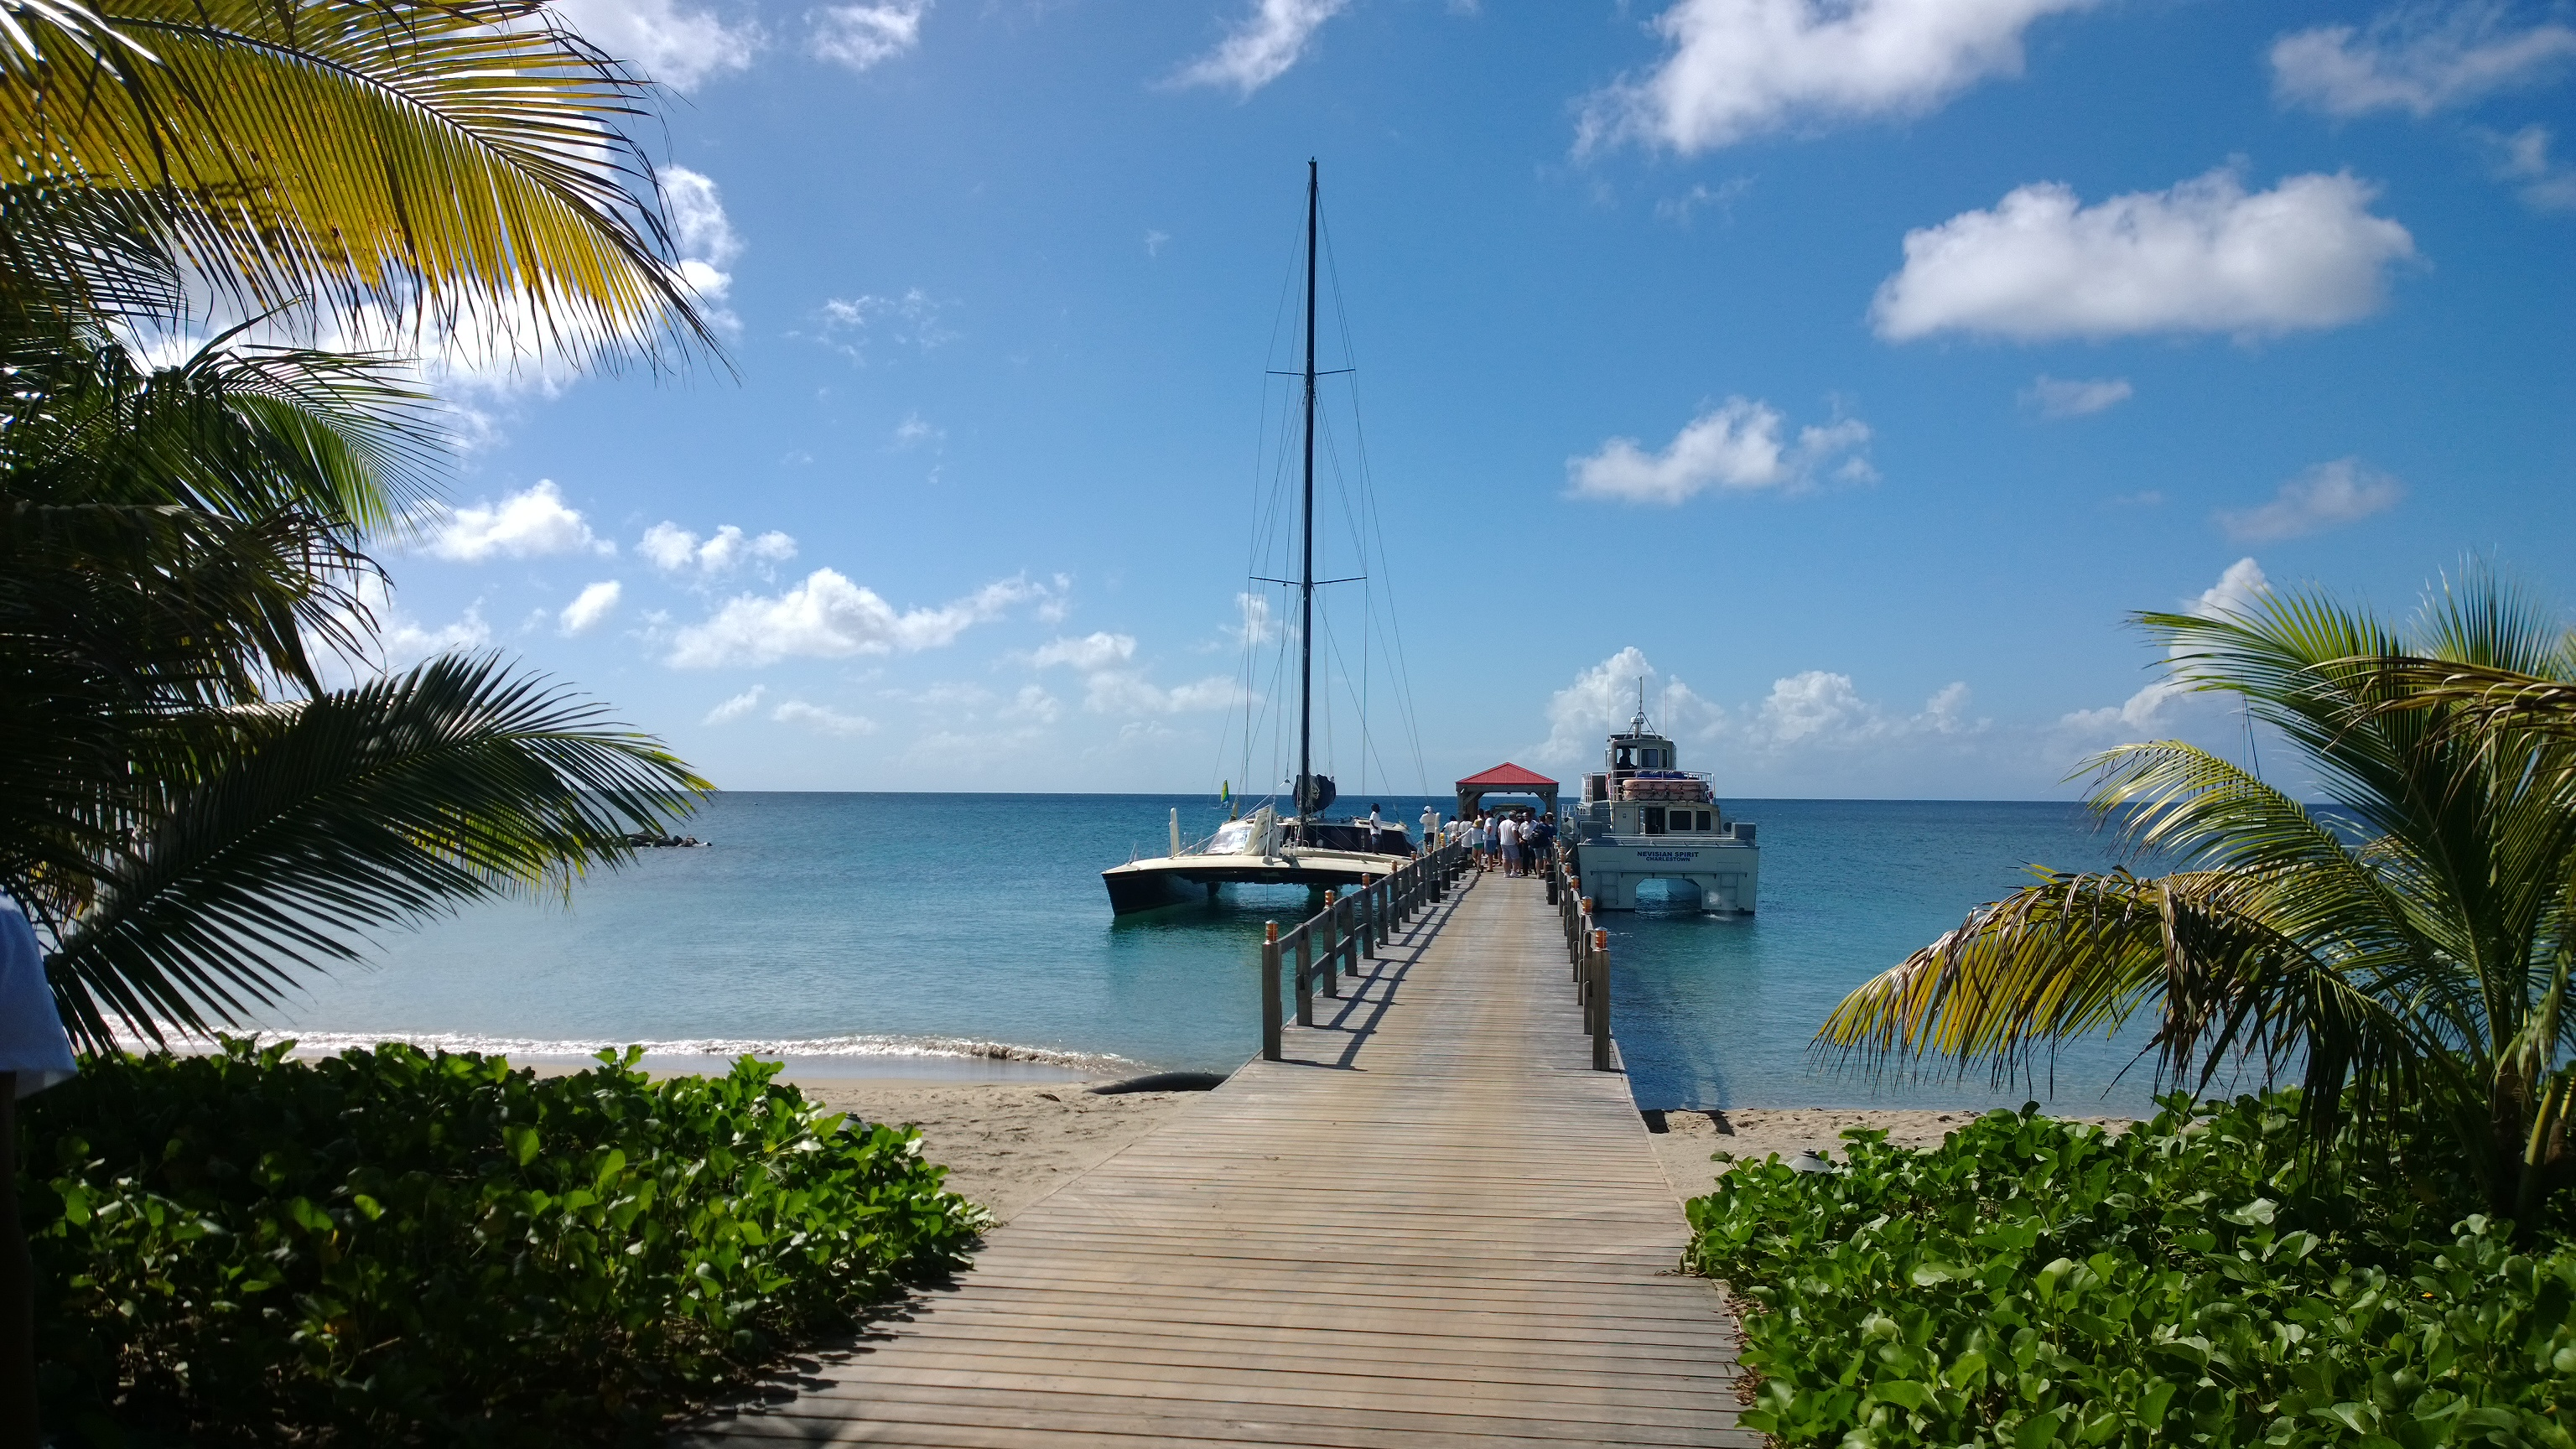 WP 20140712 11 31 12 Pro Why You Should Visit Nevis West Indies | Queen of the Caribees